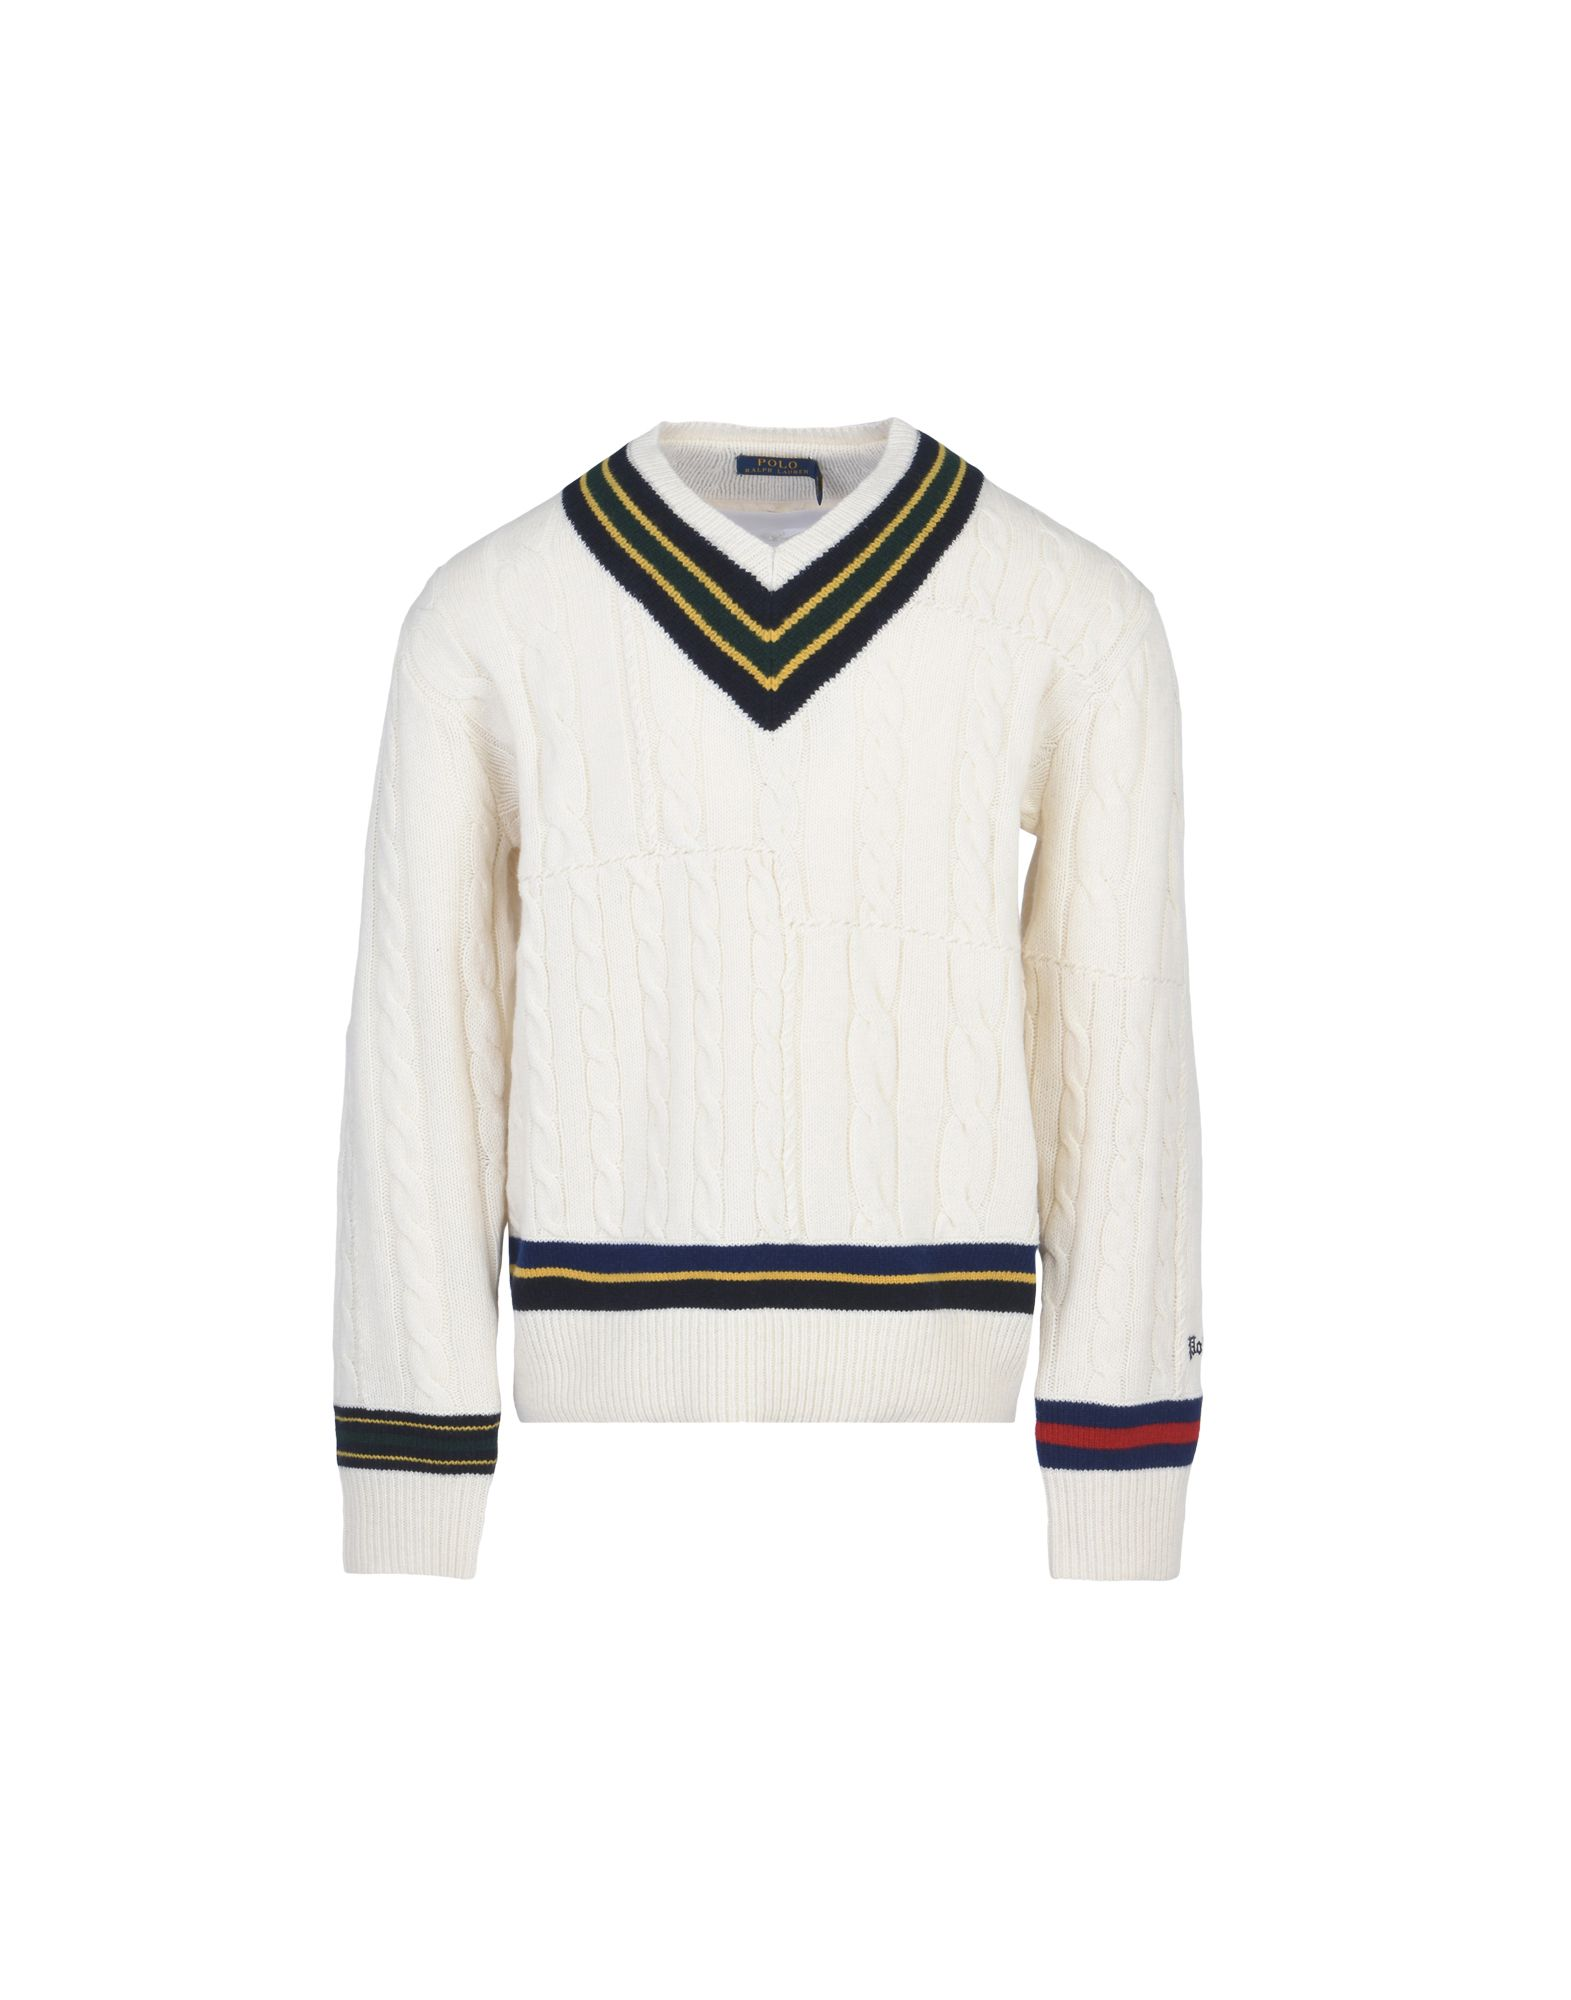 Pullover Polo Ralph Lauren Cricket Sweater - Uomo - Acquista online su